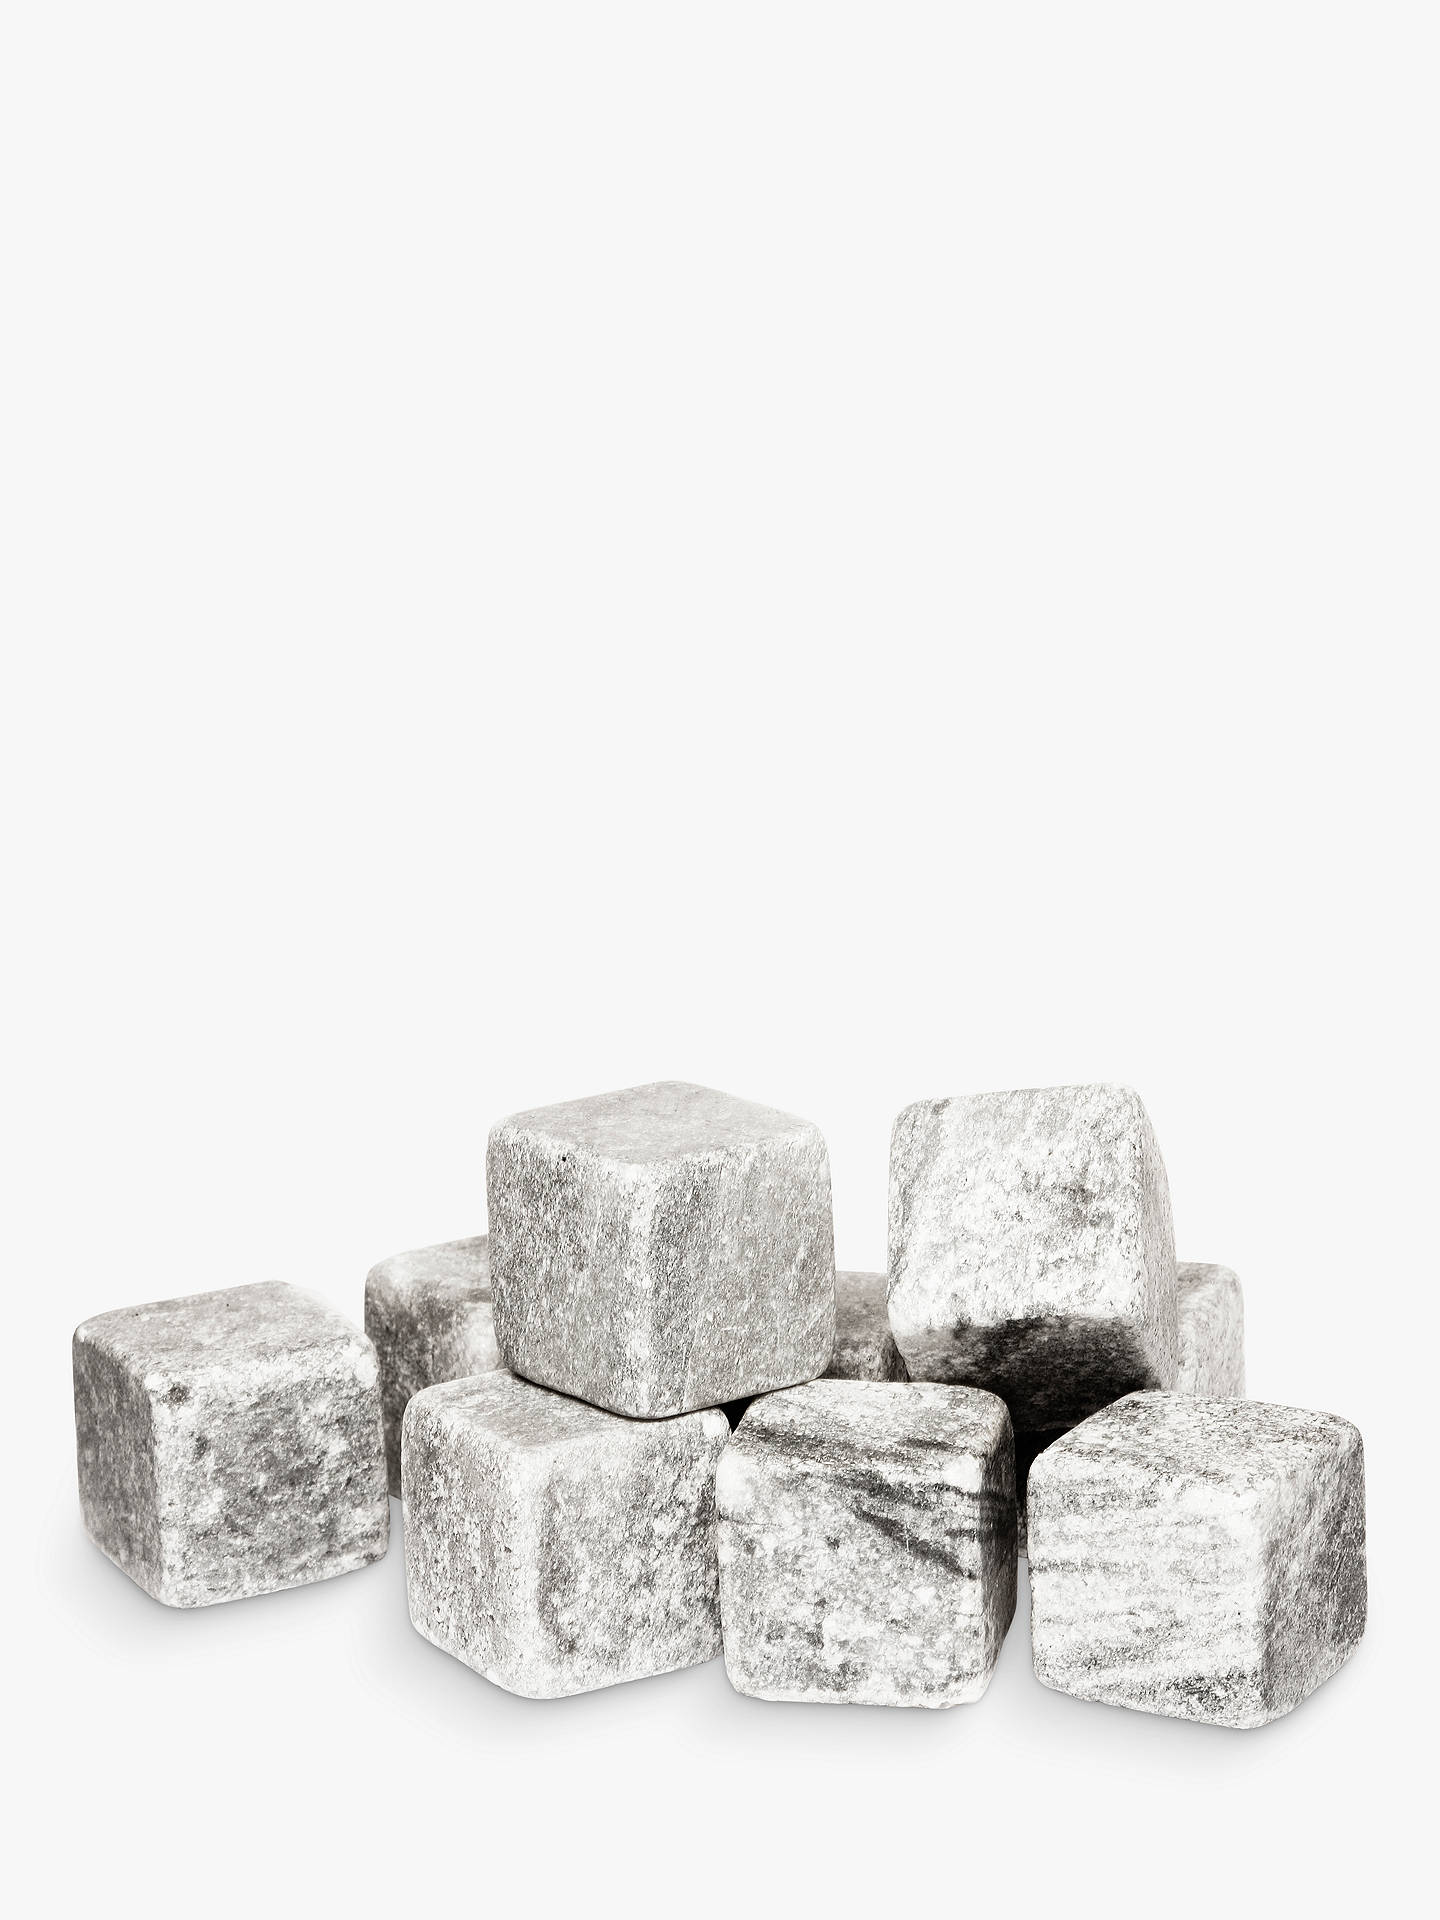 BuySagaform Whiskey Stones Online at johnlewis.com